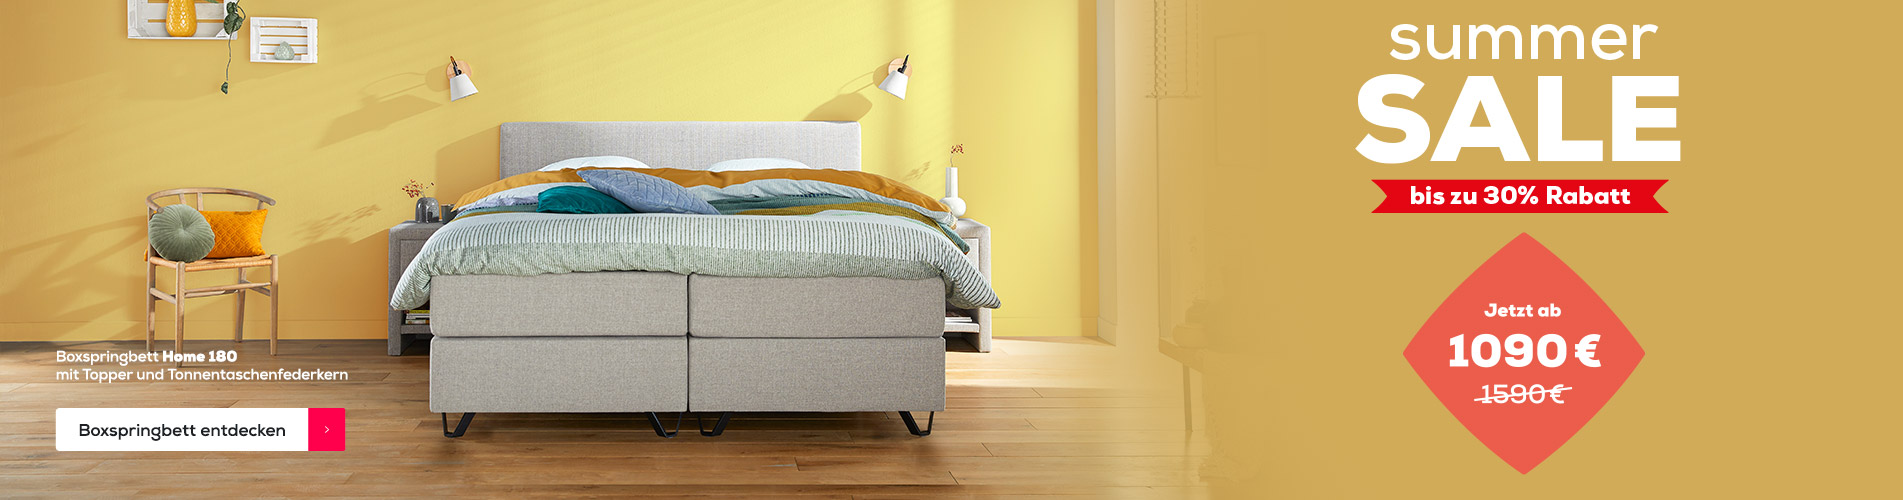 Boxspringbett Home 180 - Summer Sale| Swiss Sense